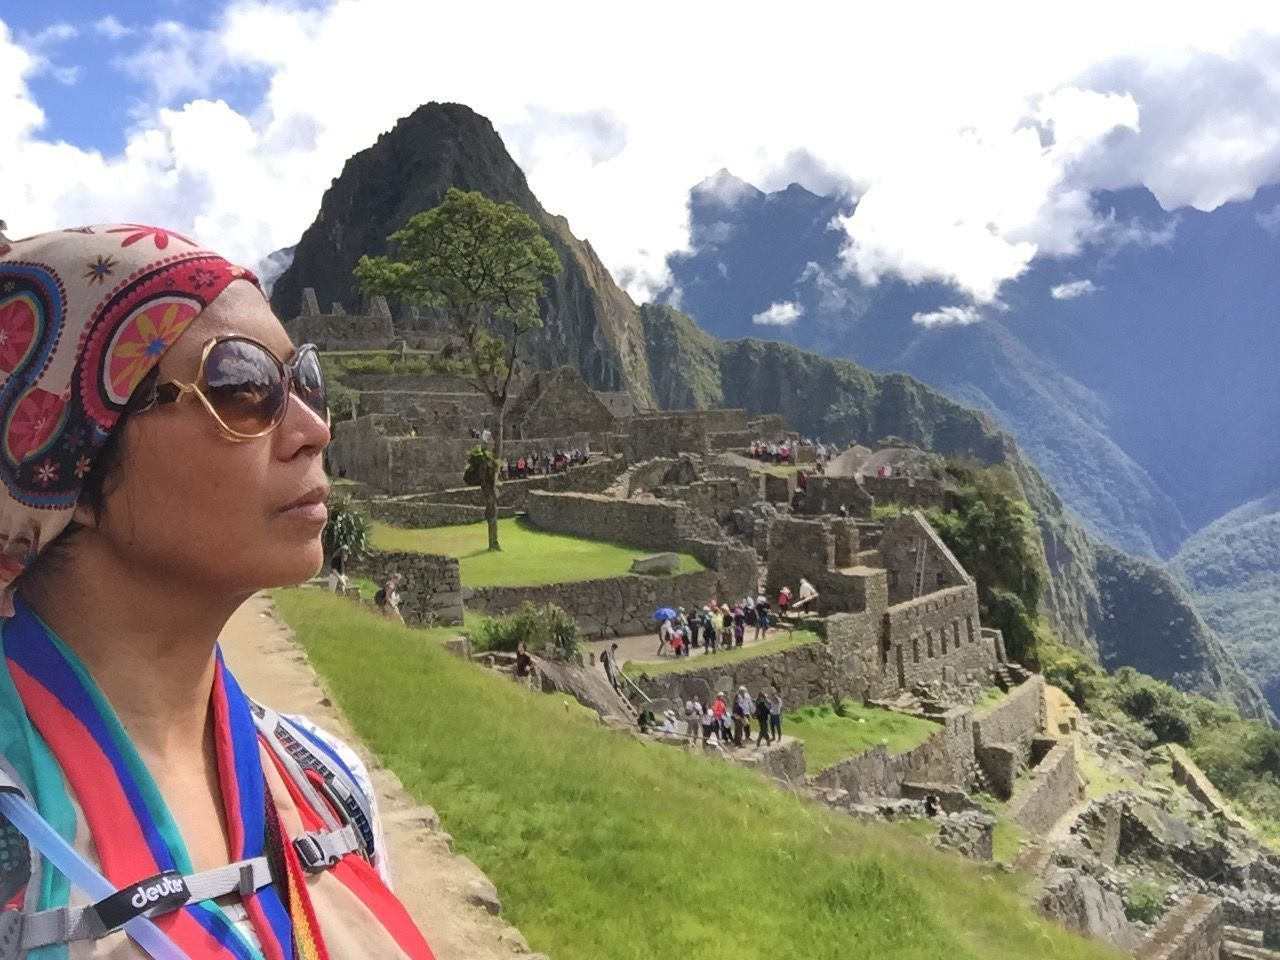 Faces of Peru😄 Original Experiences TraveldiaryLLL Tranquility LLLimages OnToMachuPicchu TheFacesofPeru Machu Picchu - Peru Inca Trail Iphone6 Adventure Time Cuzco-Perú Check This Out Showcase July